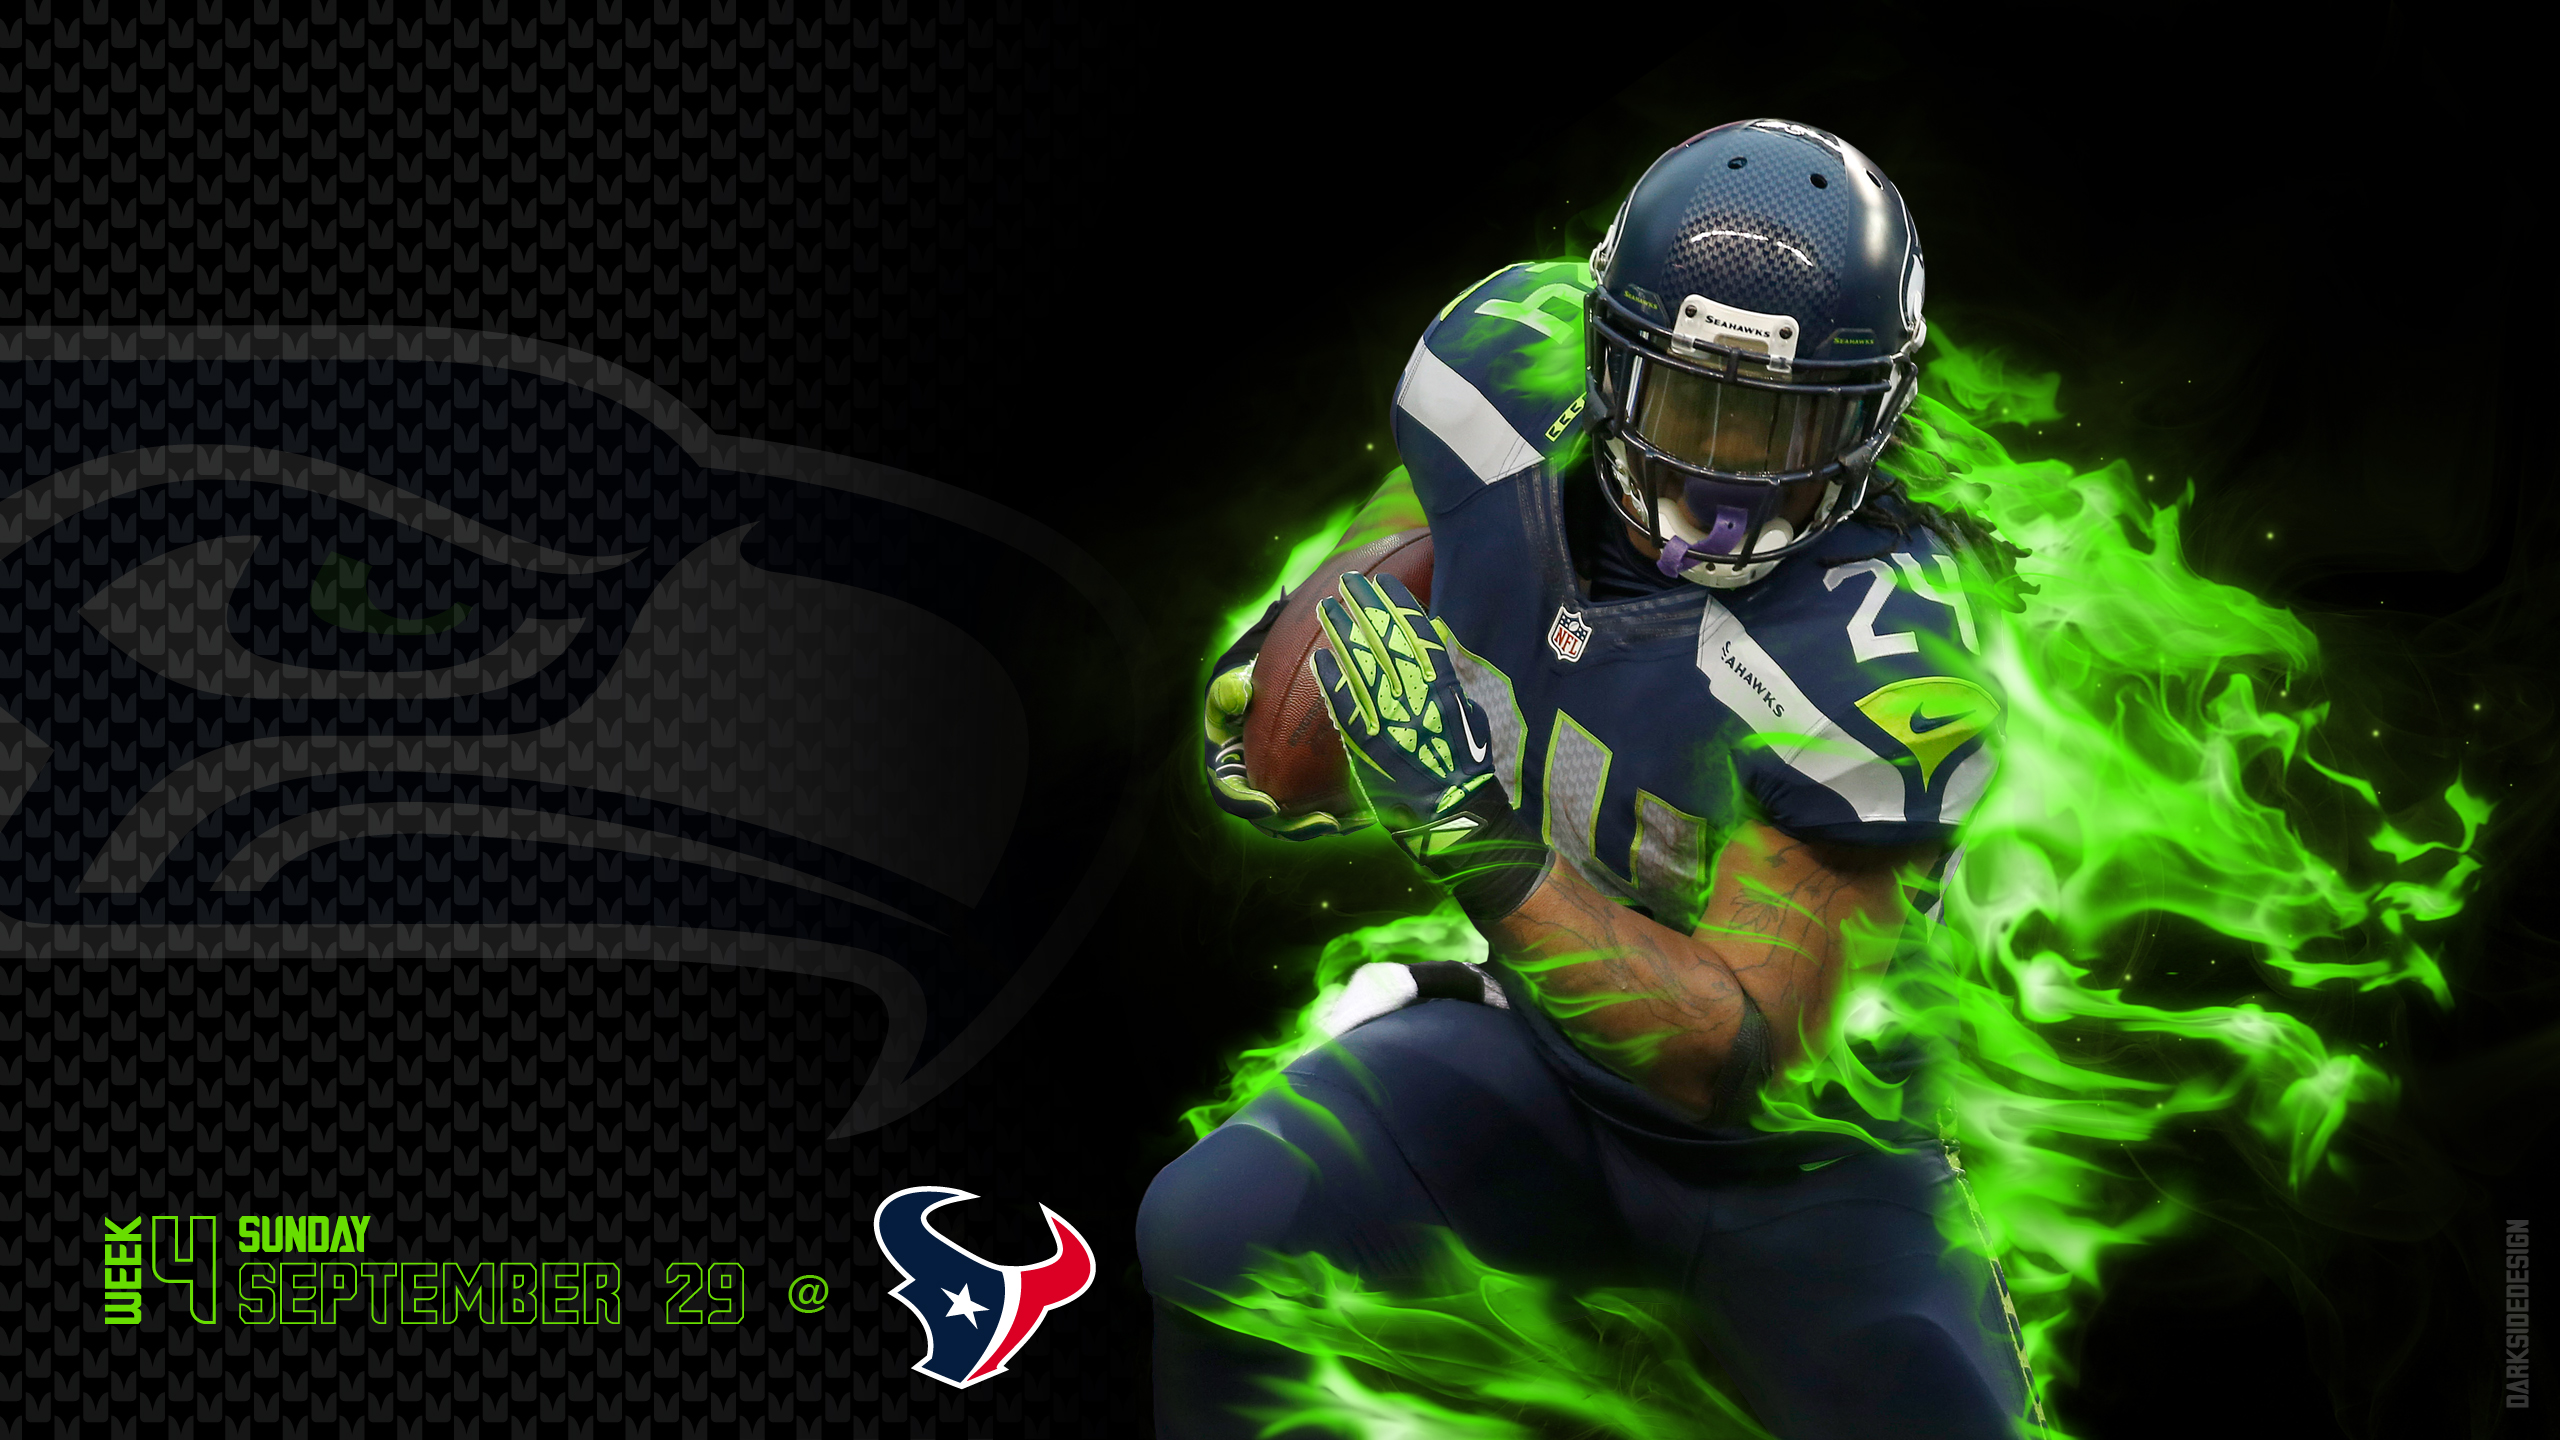 SEATTLE SEAHAWKS football nfl v wallpaper background 2560x1440